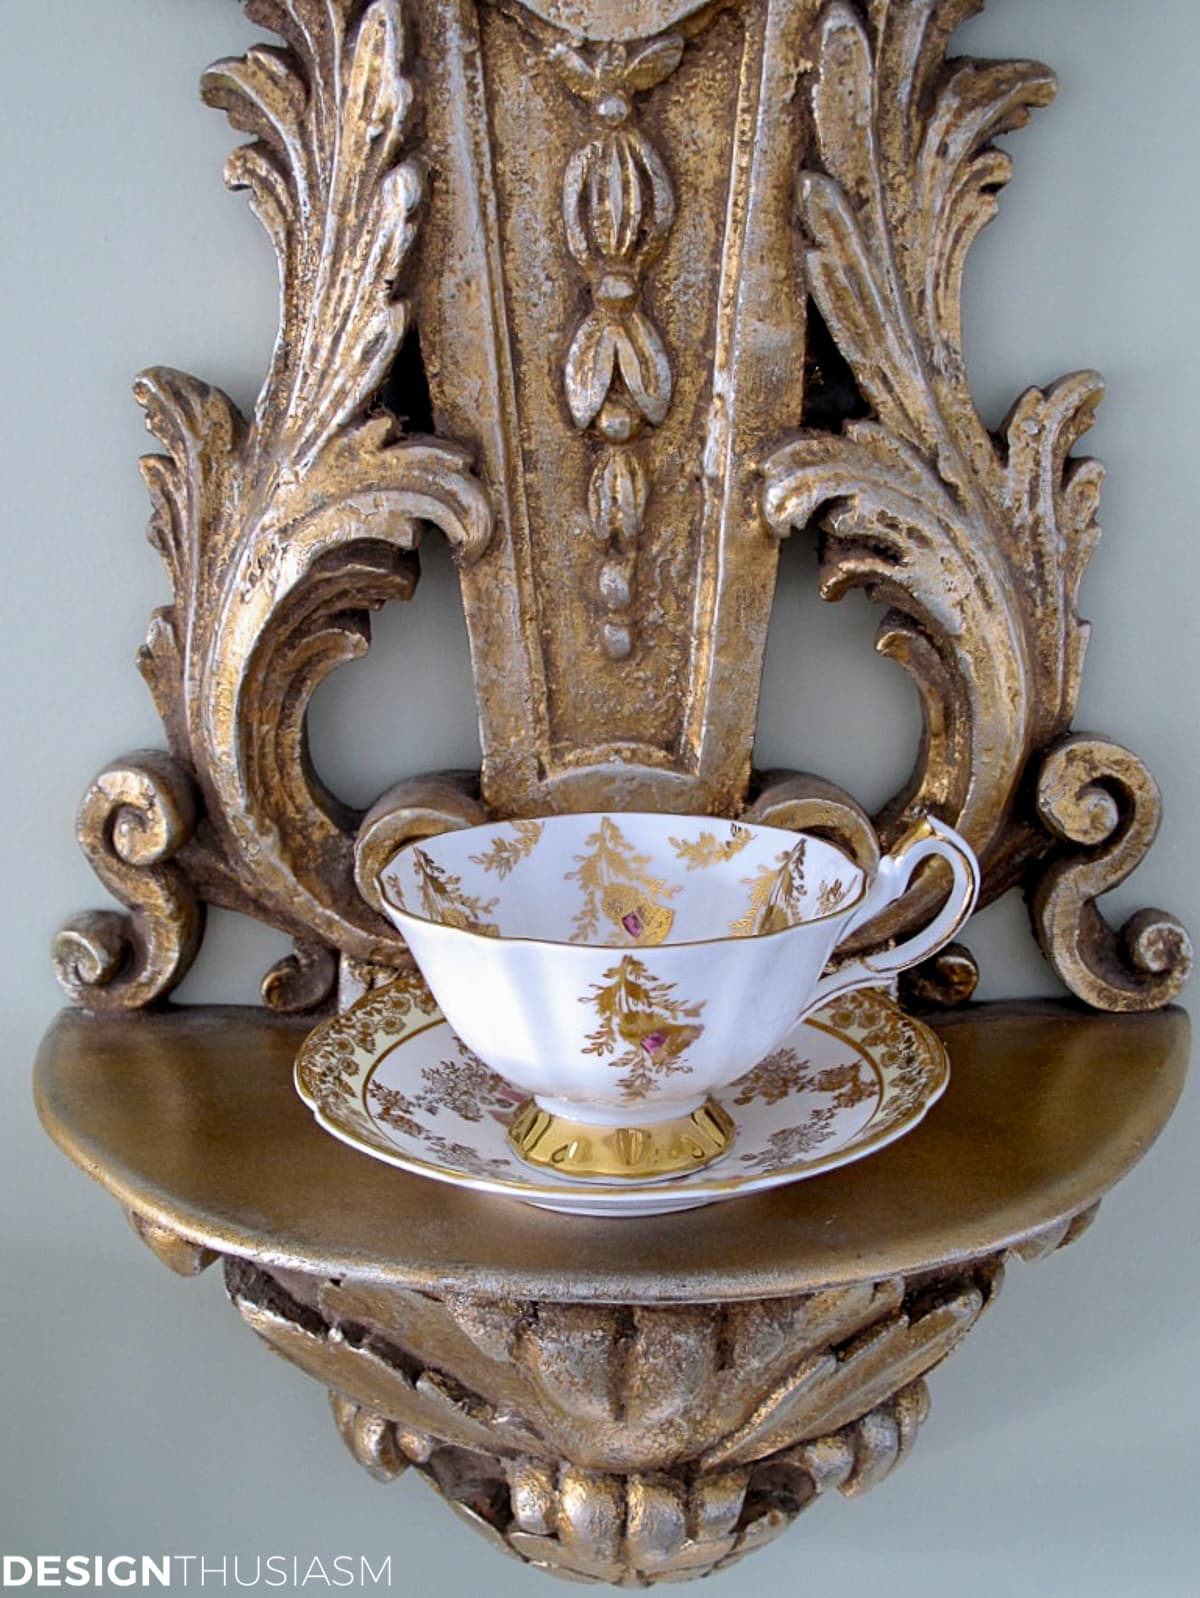 vintage teacup and saucer displayed on a shelf sconce